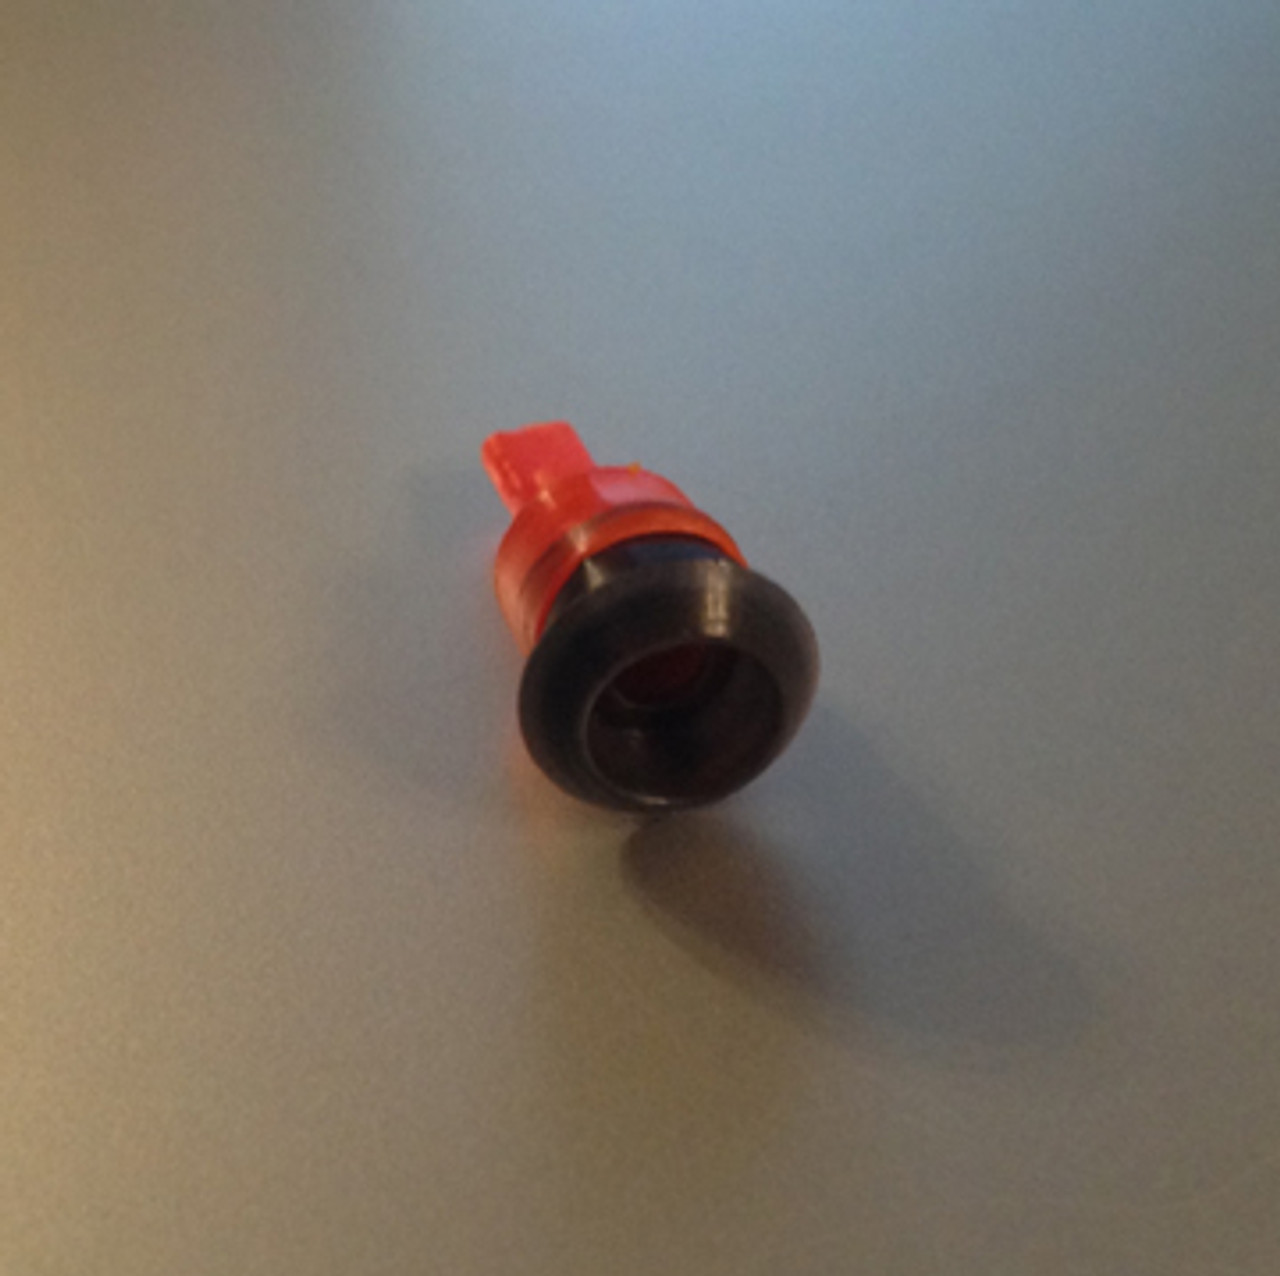 Volkswagen Routan shifter cable bushing